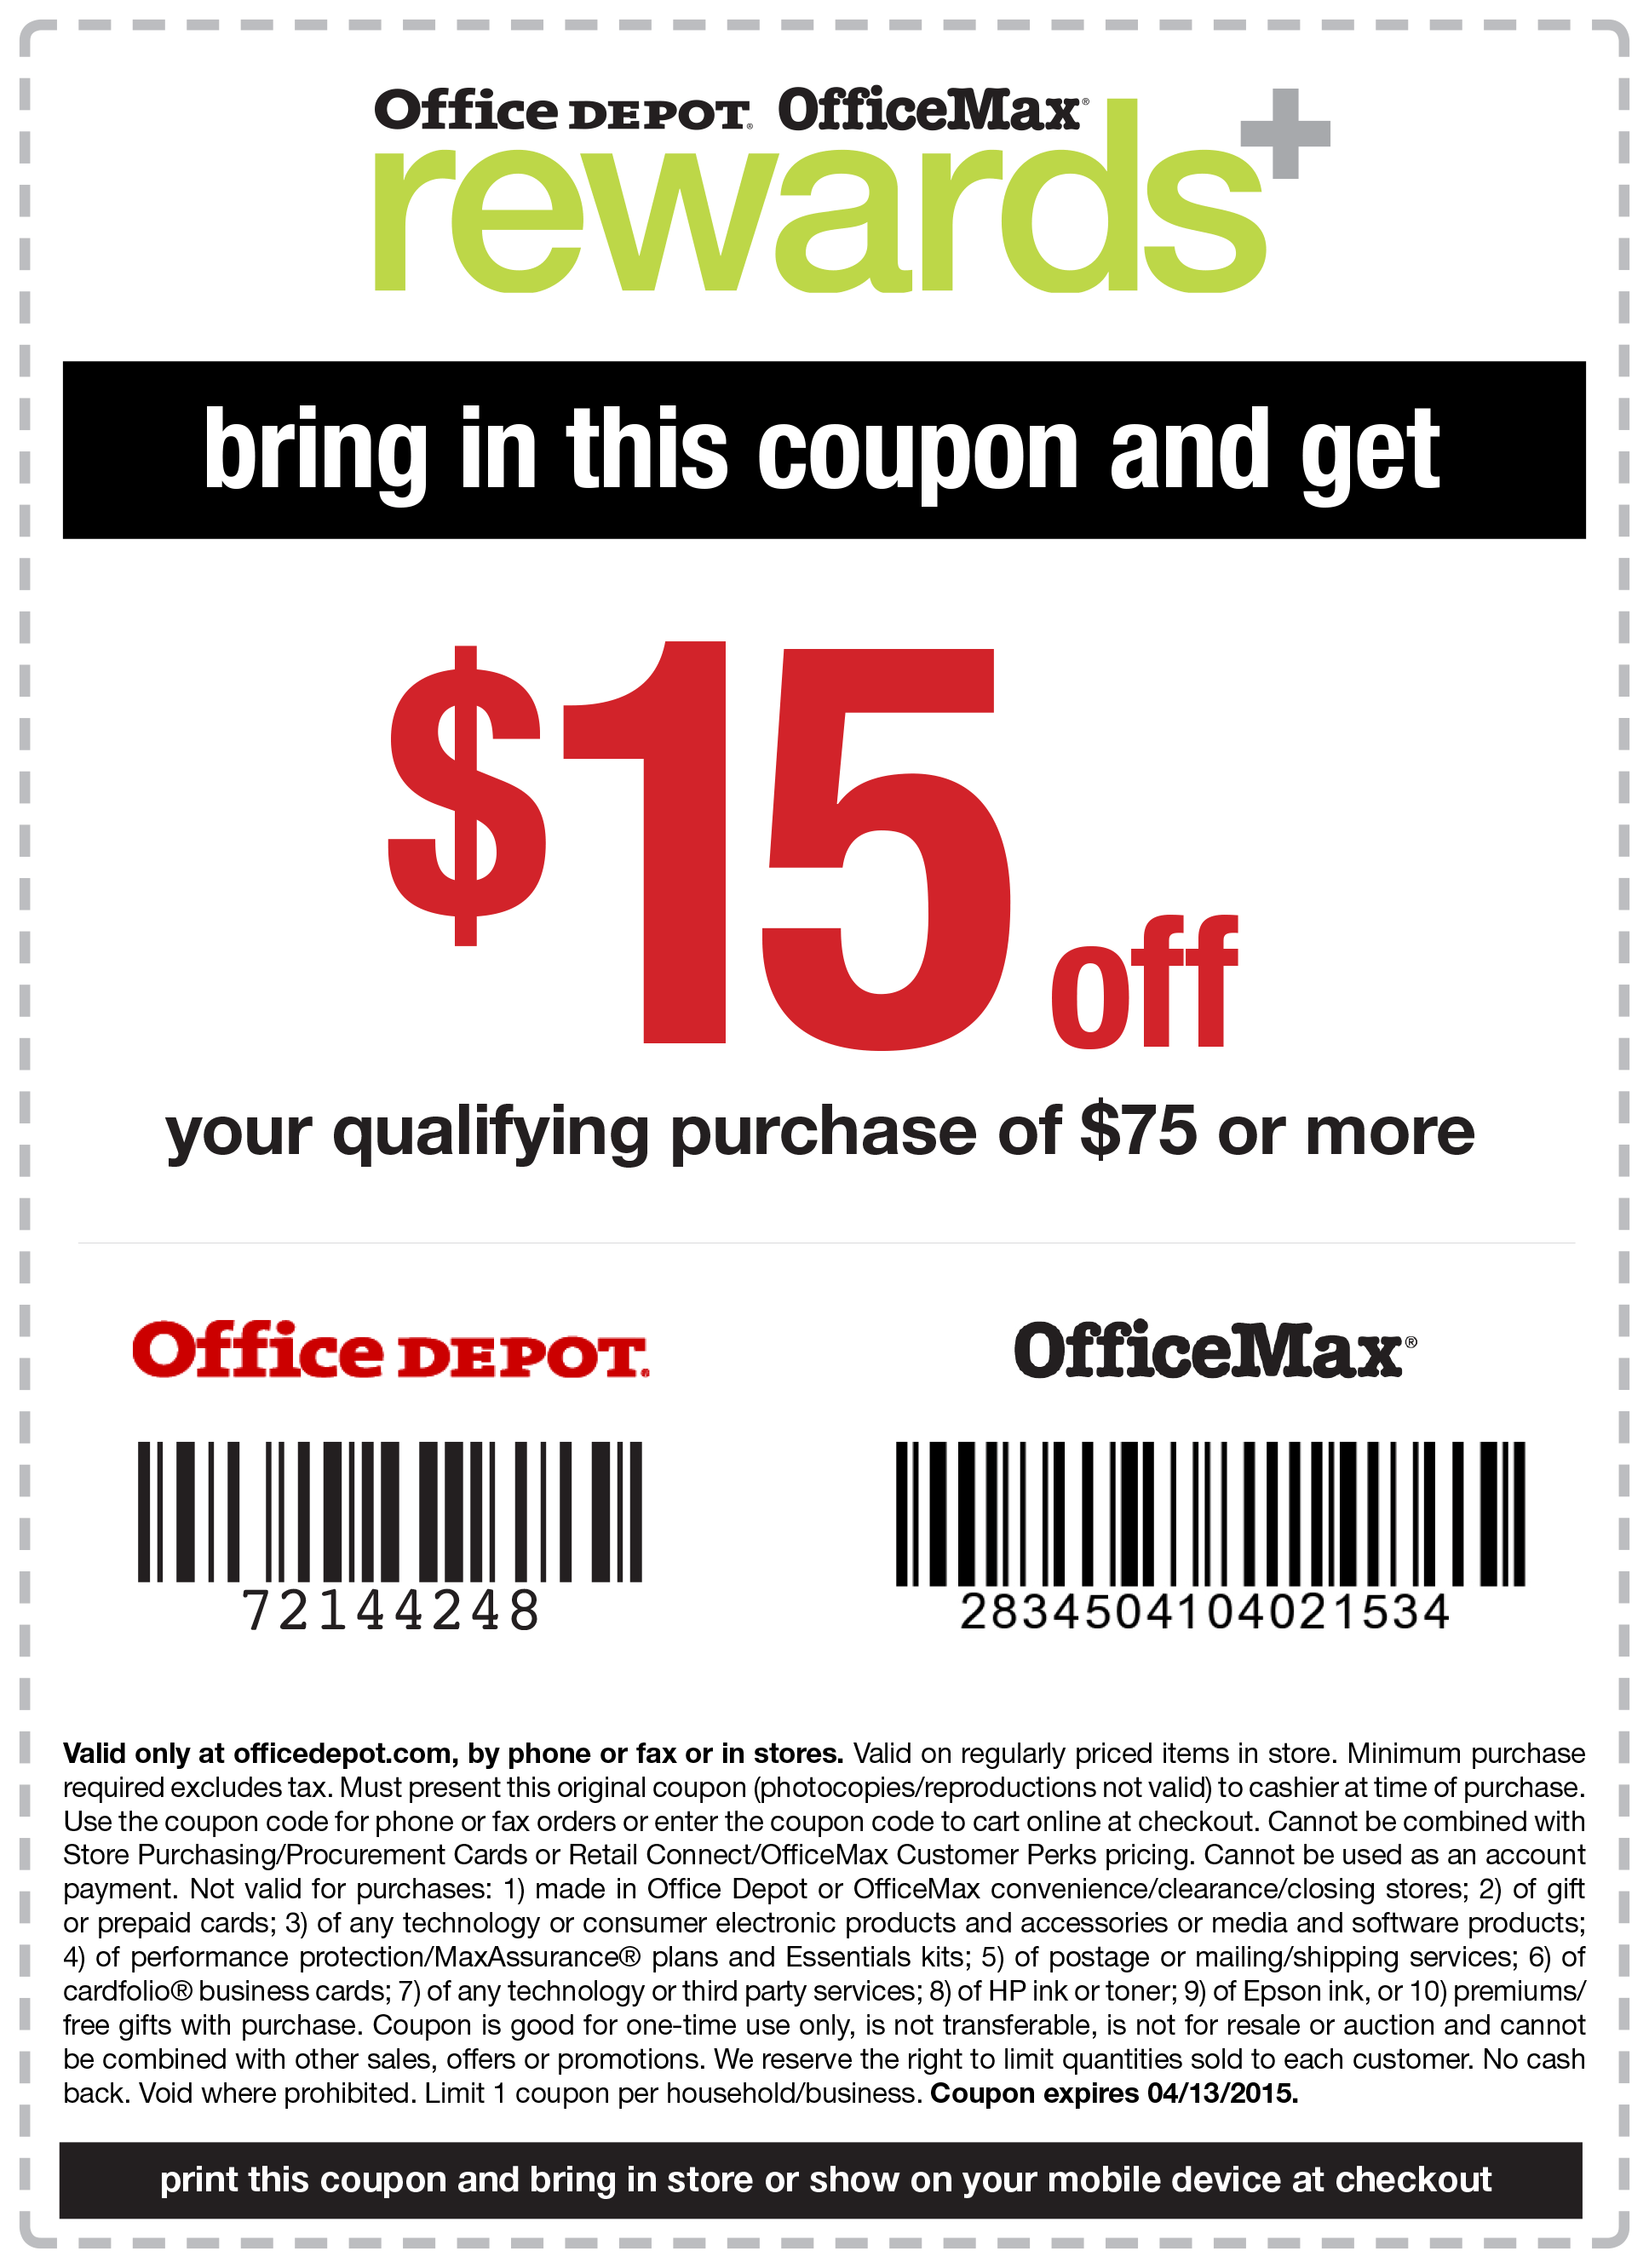 Office Depot Coupon July 2017 $15 off $75 at Office Depot & OfficeMax, or online via promo code 72144248